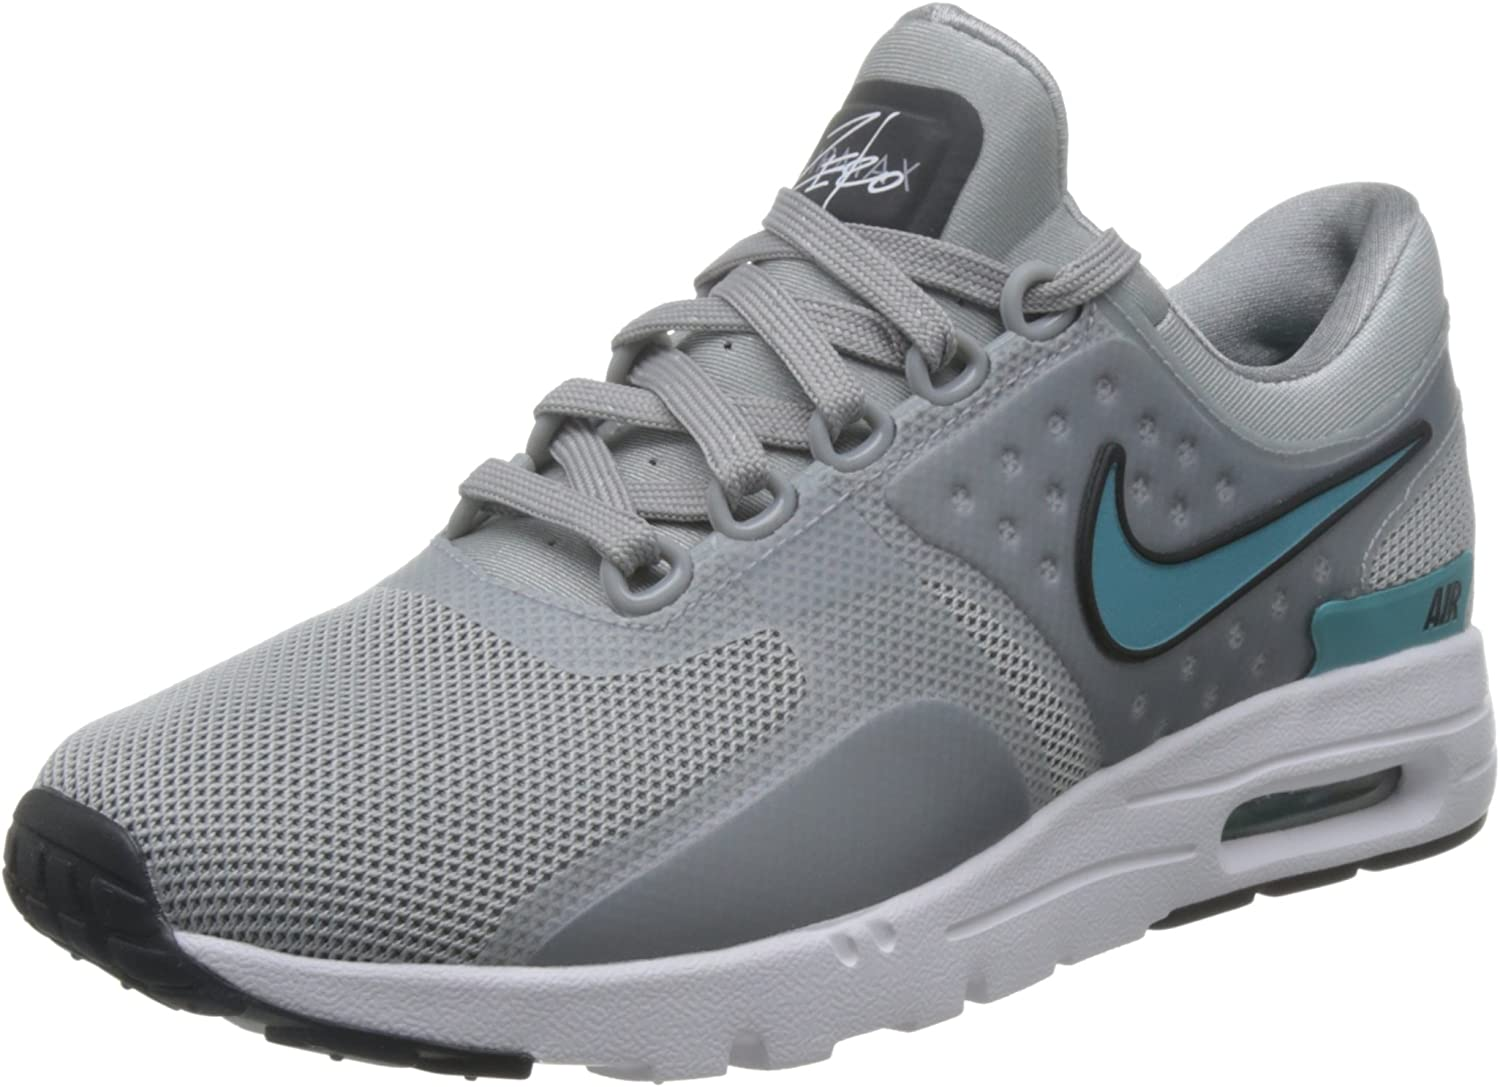 Nike Women's Air Max Zero QS Running Athletic shoes